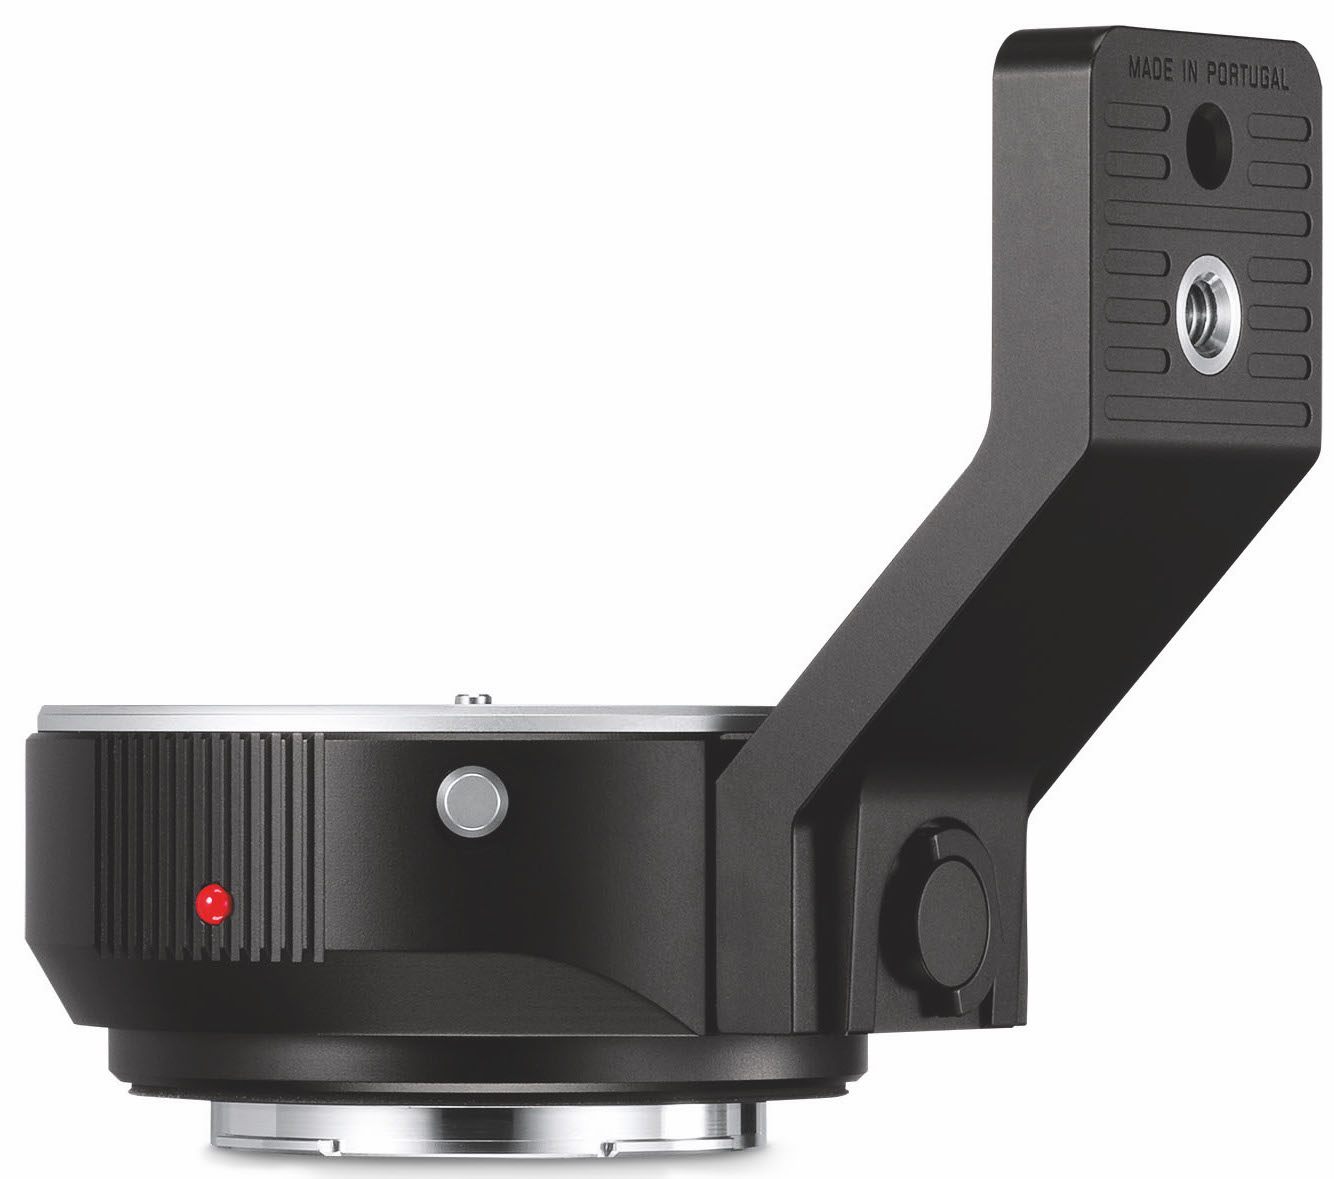 Leica has announced the Leica-S Adapter L which enables use of Leica S lenses On mirrorless SL system. This will allow users of the Leica SL to connect 16 S-model lenses to the SL camera.